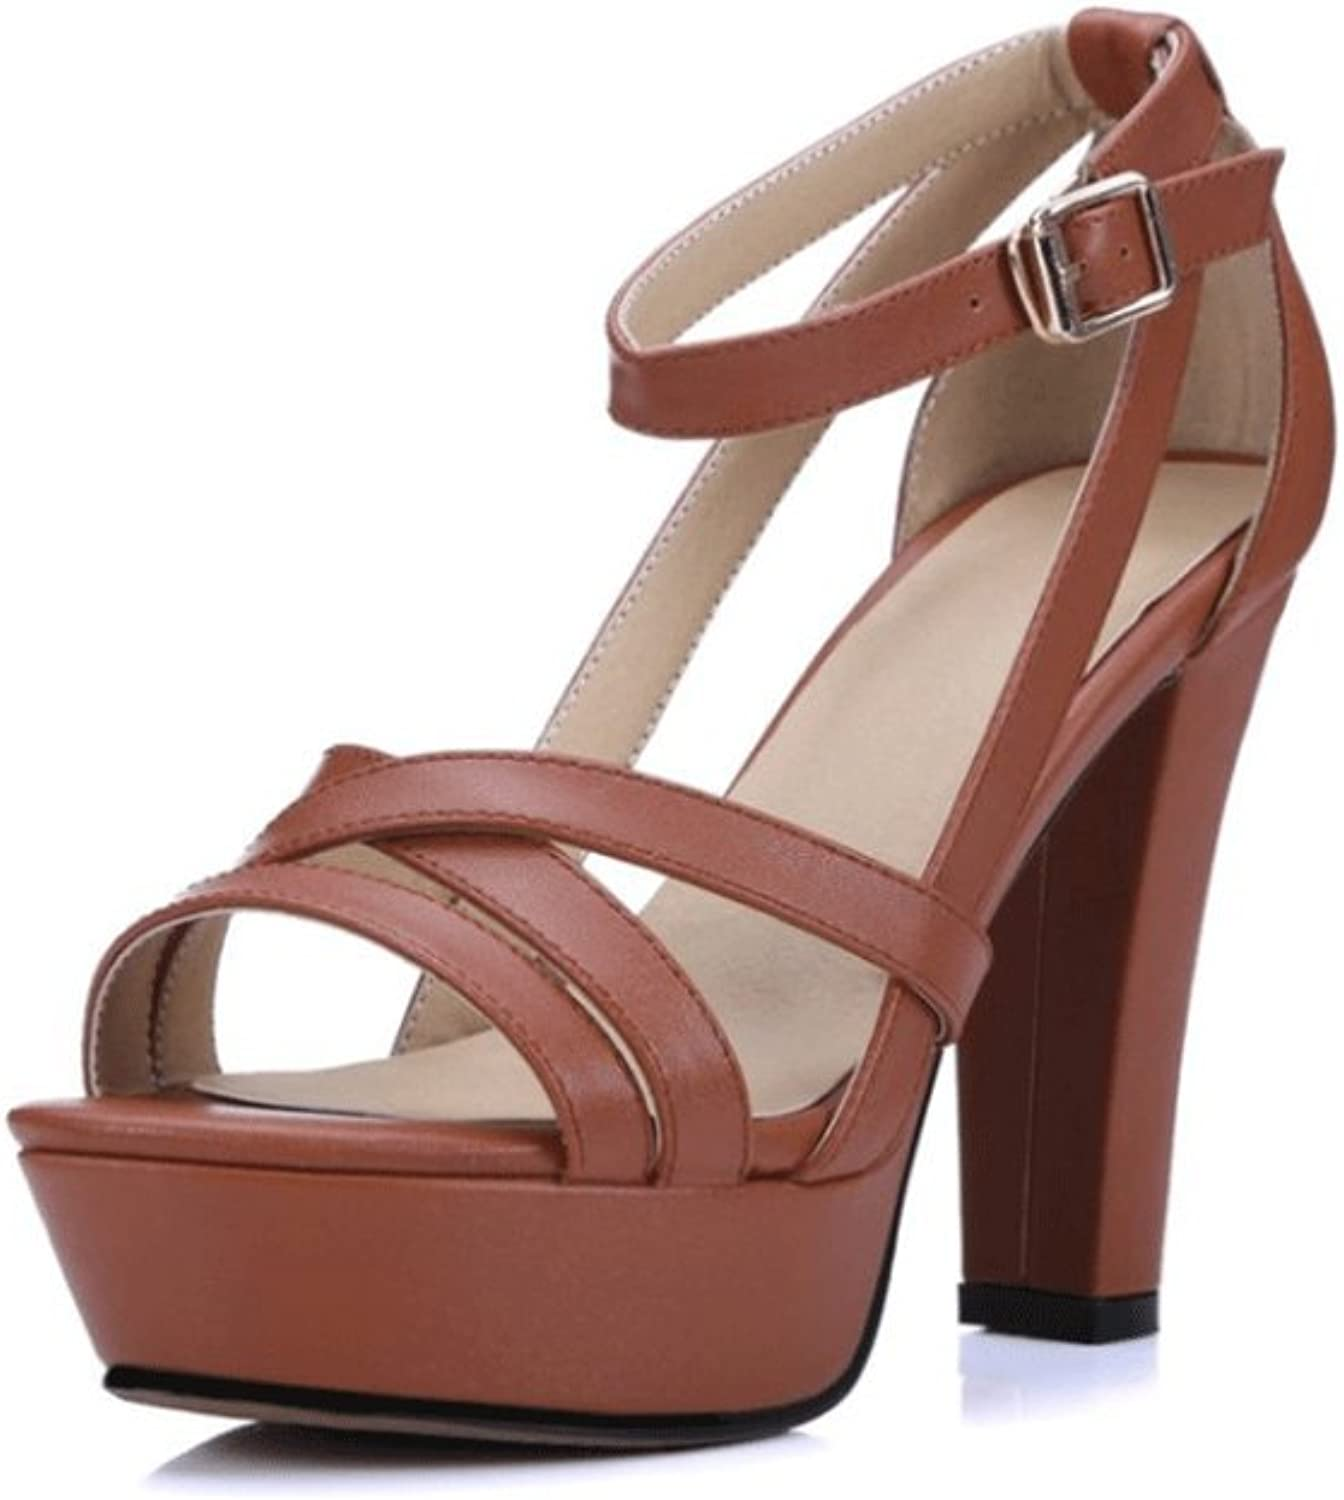 Women's Leather Sandals Waterproof Platform Thick High Heels (color   Brown, Size   EU36 UK3.5 CN35)